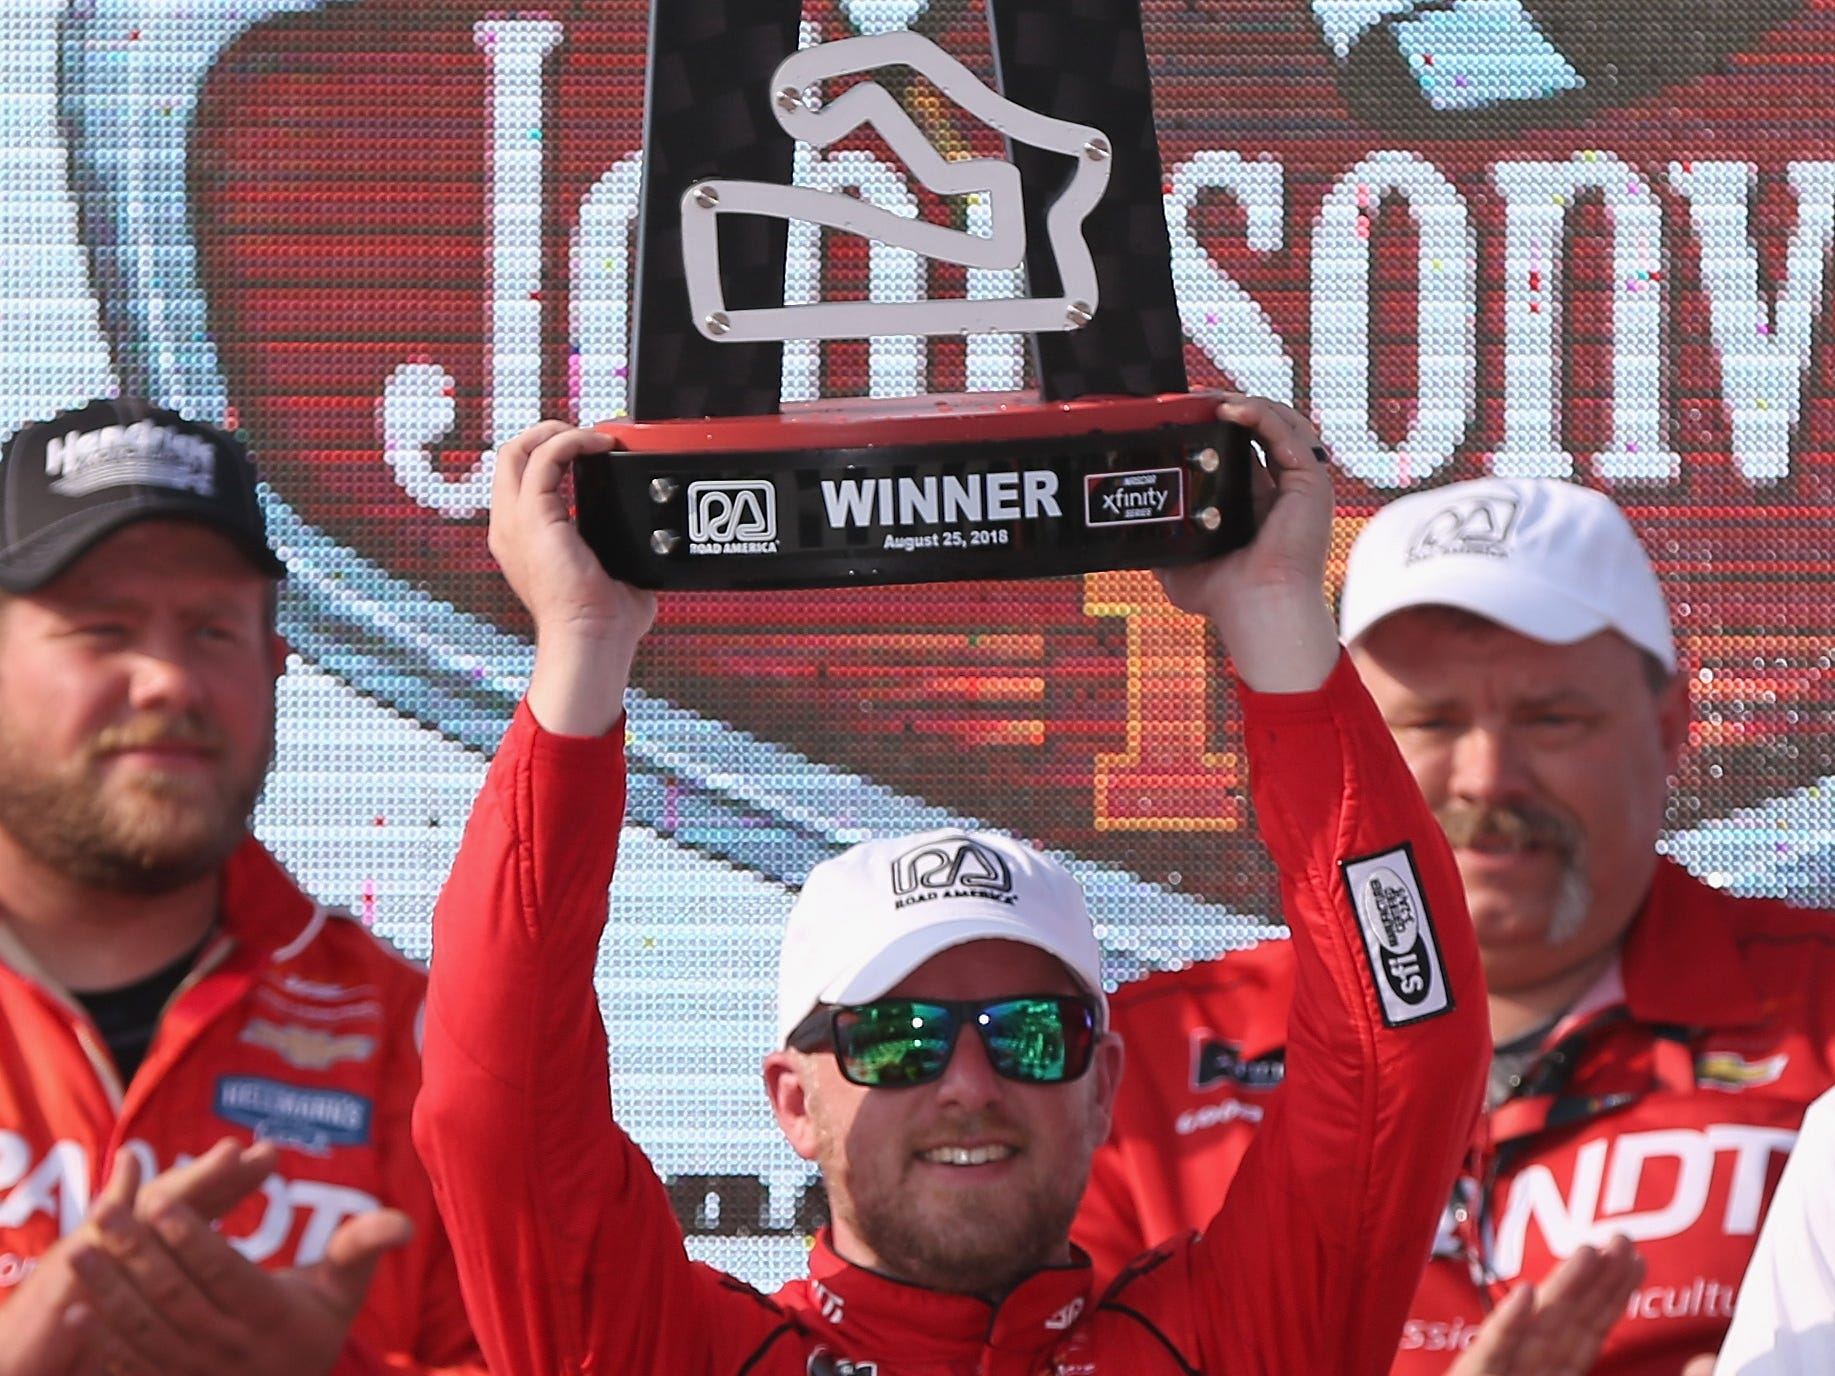 Justin Allgaier hoists the trophy for winning the NASCAR Xfinity Series Johnsonville 180 on Saturday at Road America in Elkhart Lake.